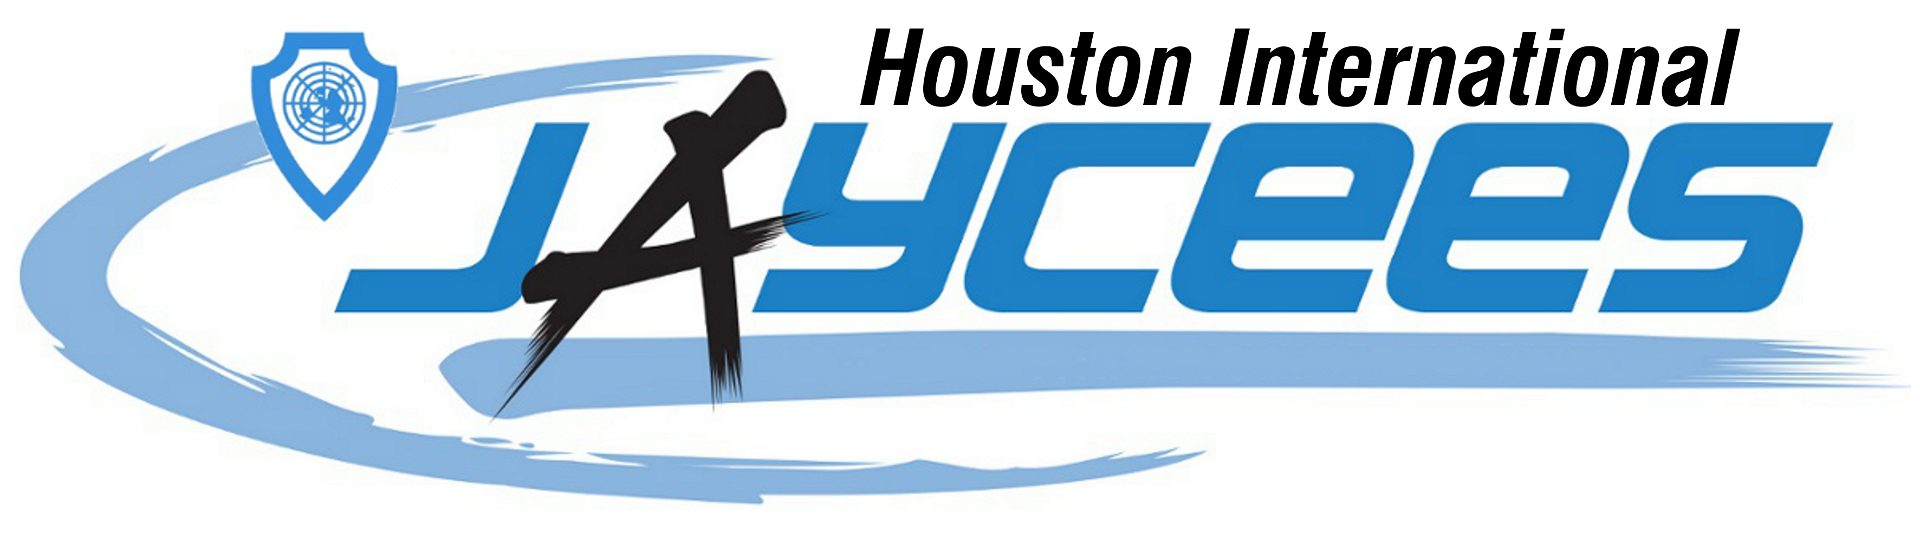 Houston International Jaycees/JCI